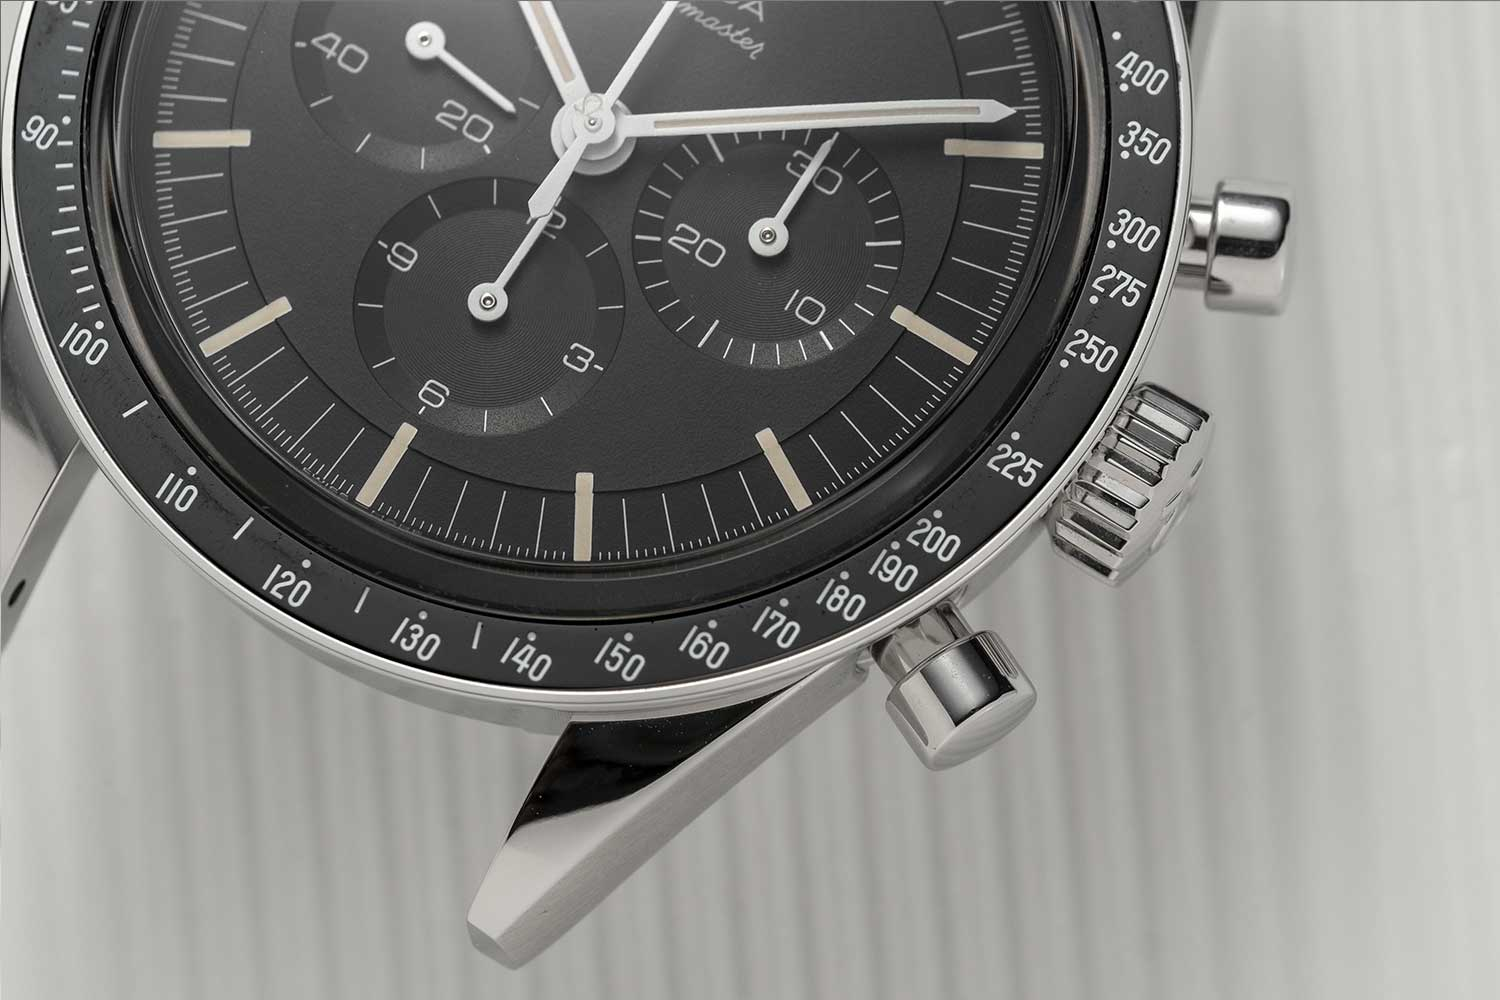 Stepped dial on the Speedmaster Moonwatch 321 Stainless Steel in the spirit of the Speedmaster ref. 105.003-65 (©Revolution)